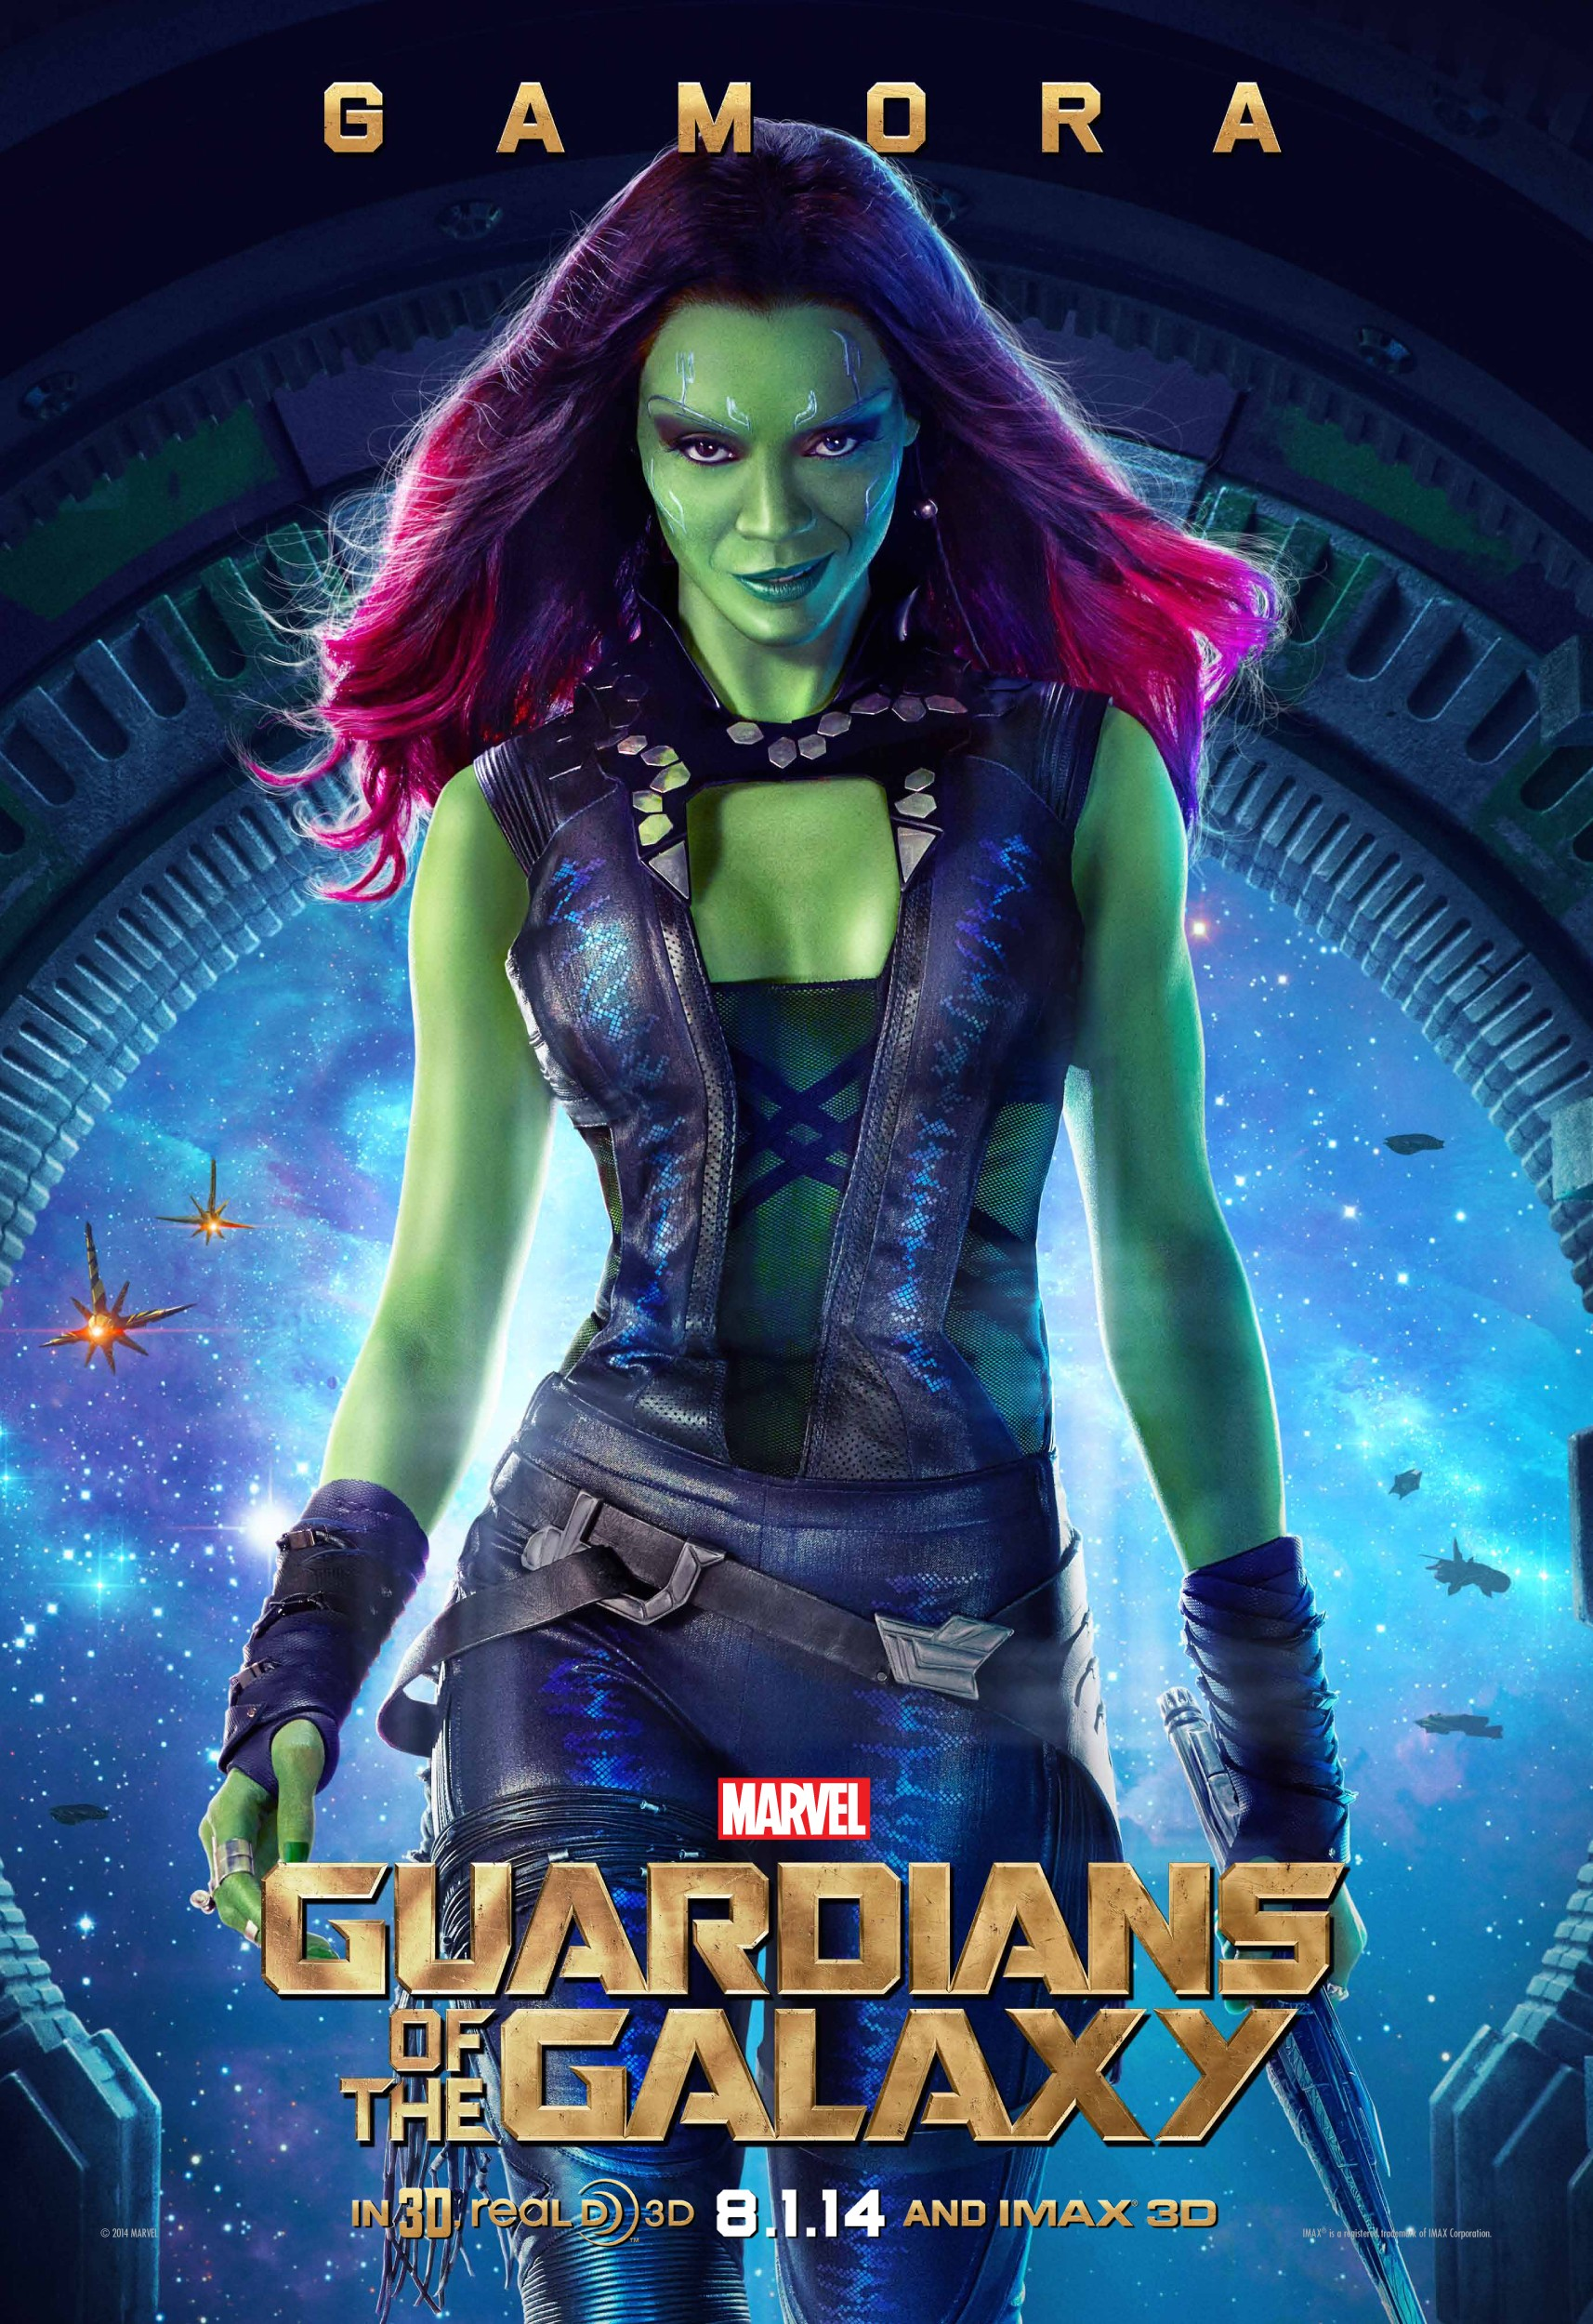 Gamora – Guardians Of The Galaxy